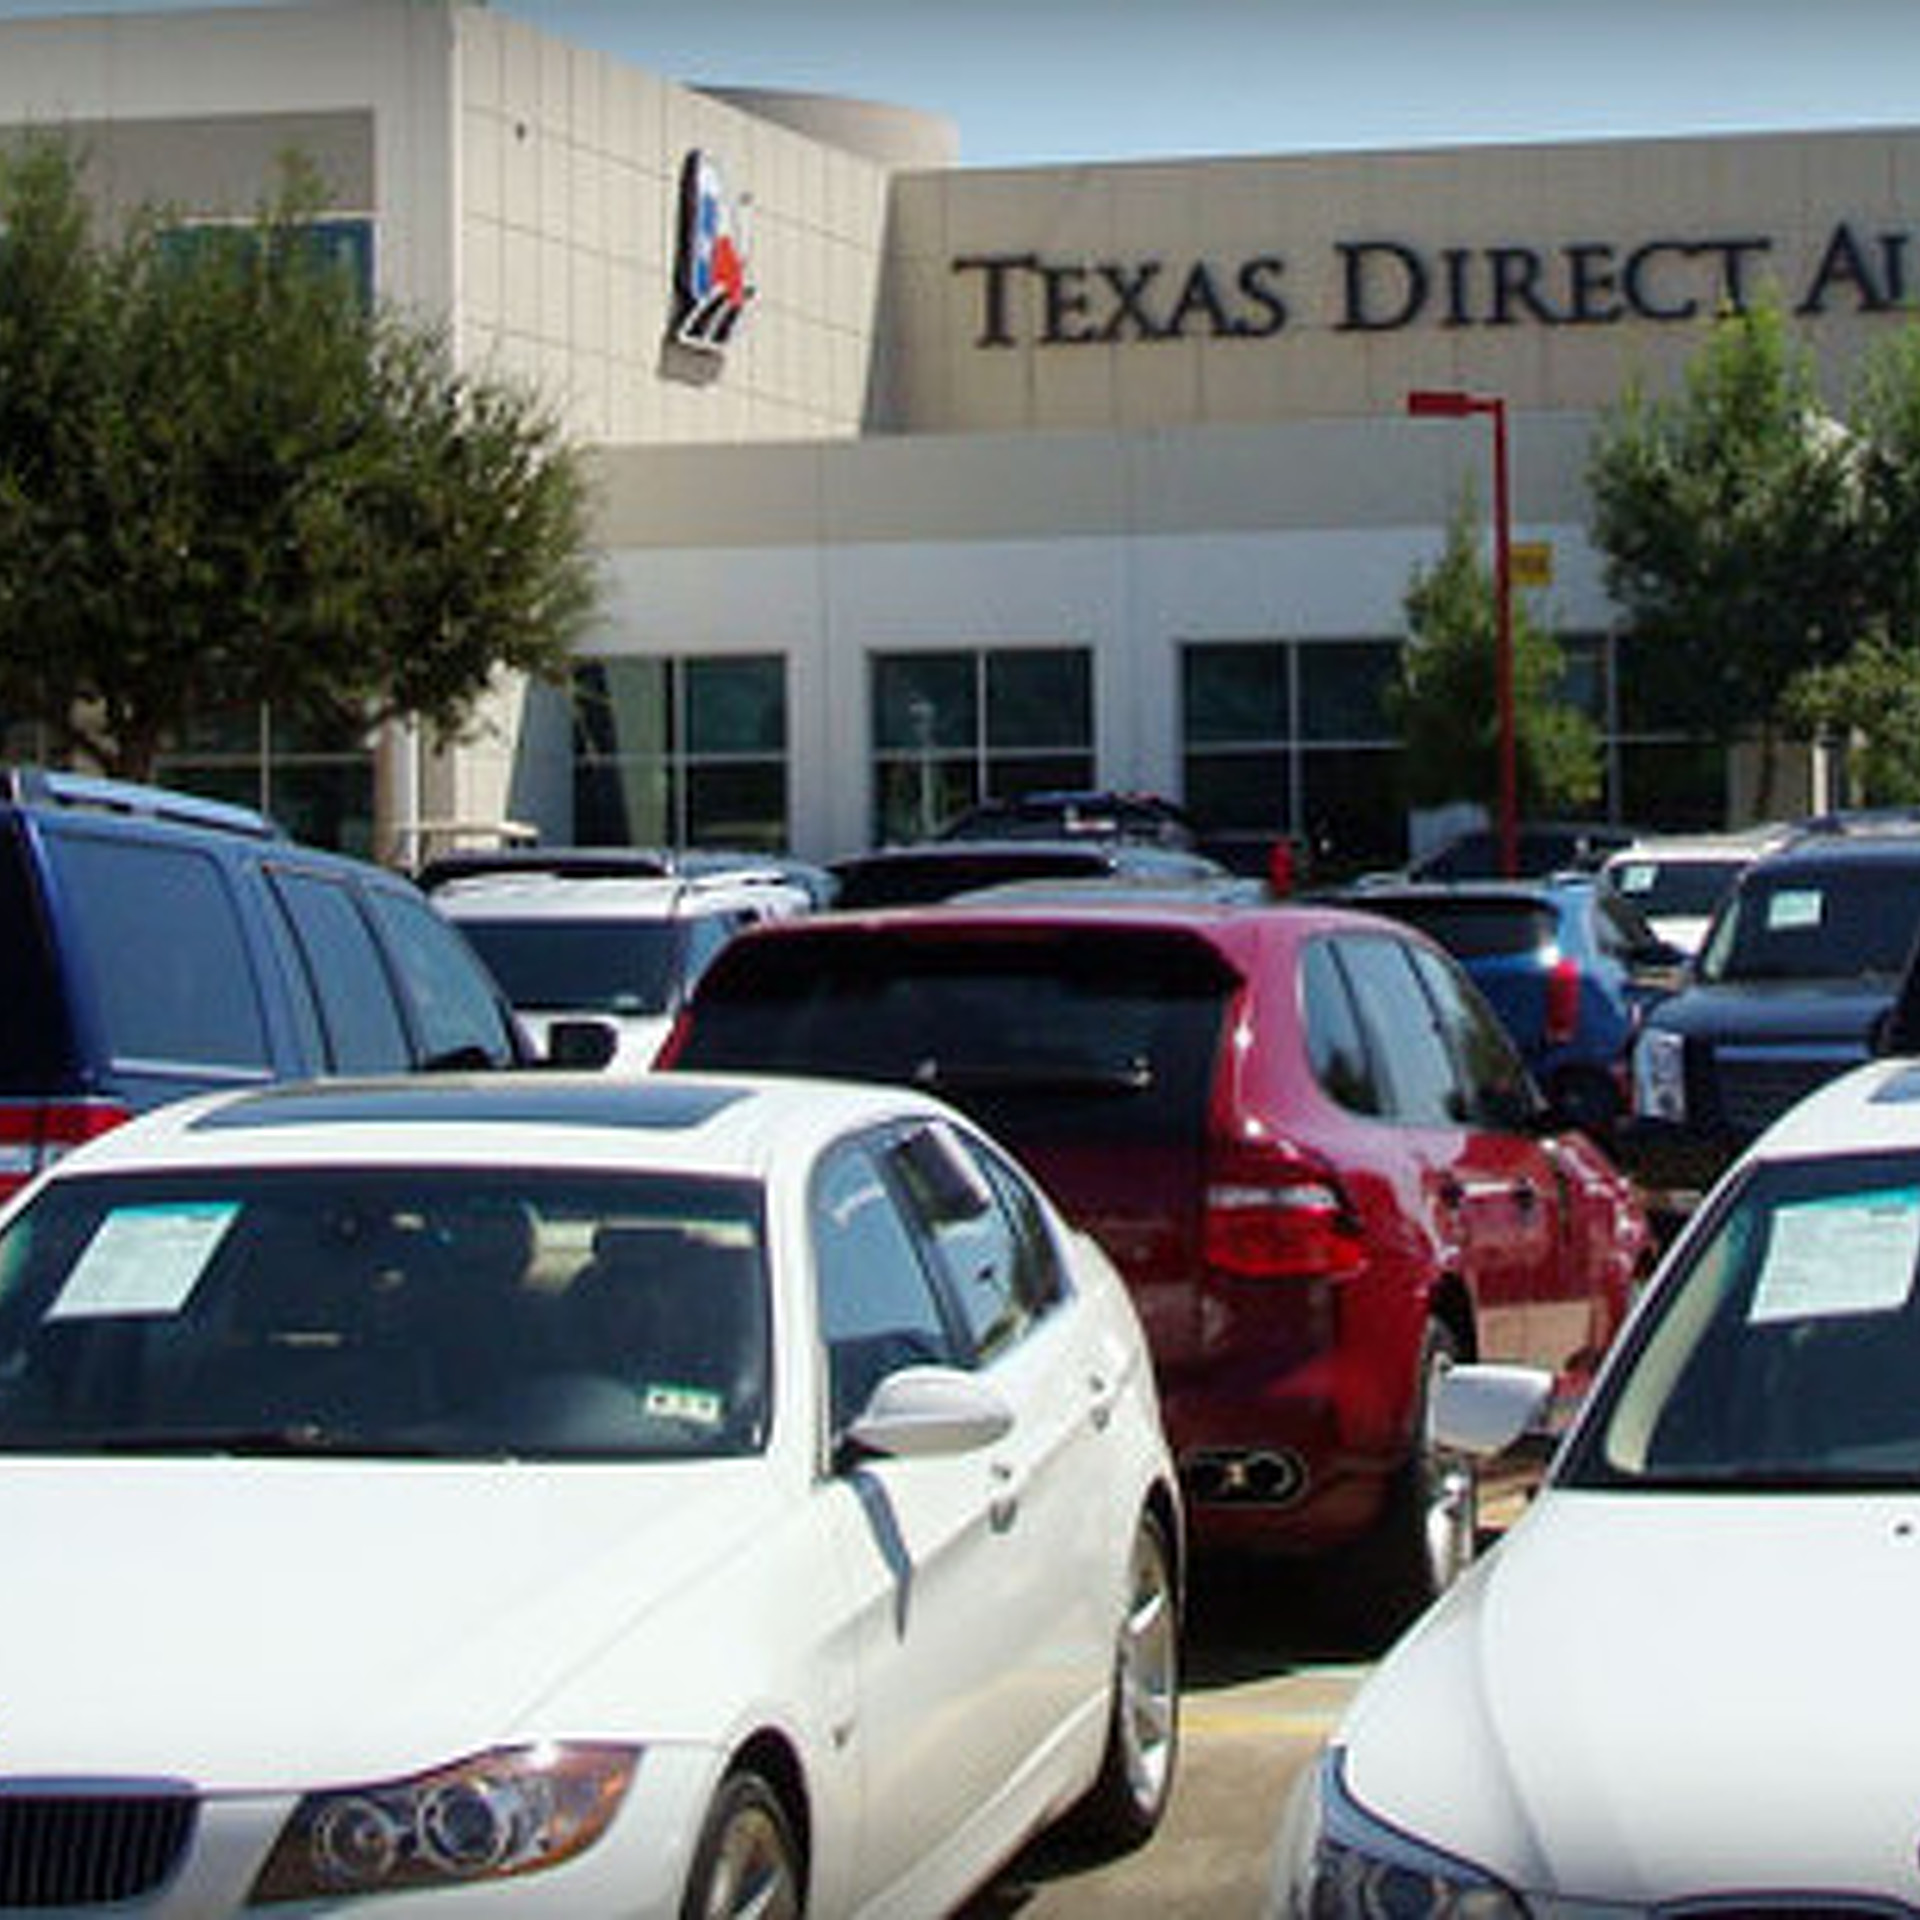 Car Ing Service Vroom S Texas Direct Auto What You Need To Know